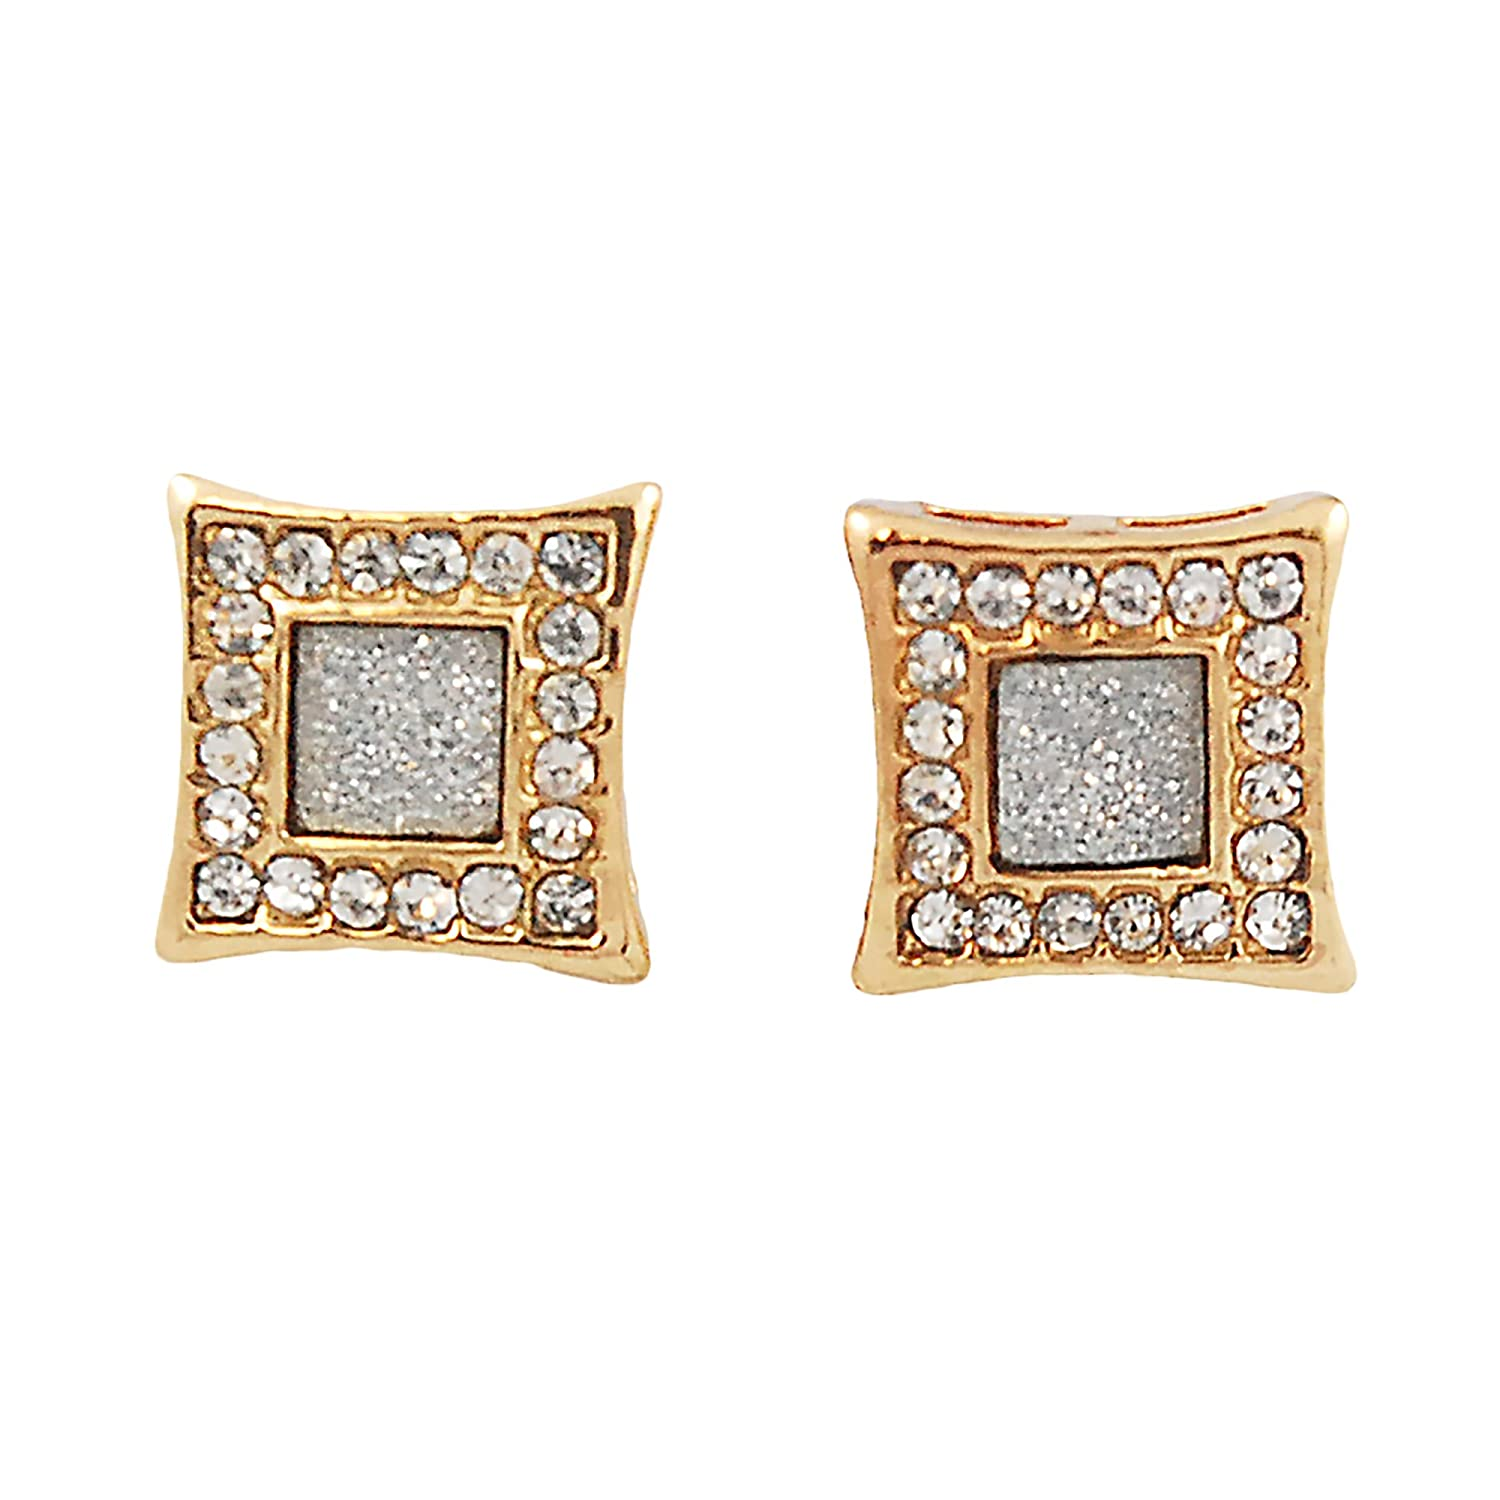 971a98f15 Amazon.com: Mens Gold-Tone 10mm Iced Out Hip Hop Bling Stardust Micropave  Dome Kite Earrings: Jewelry